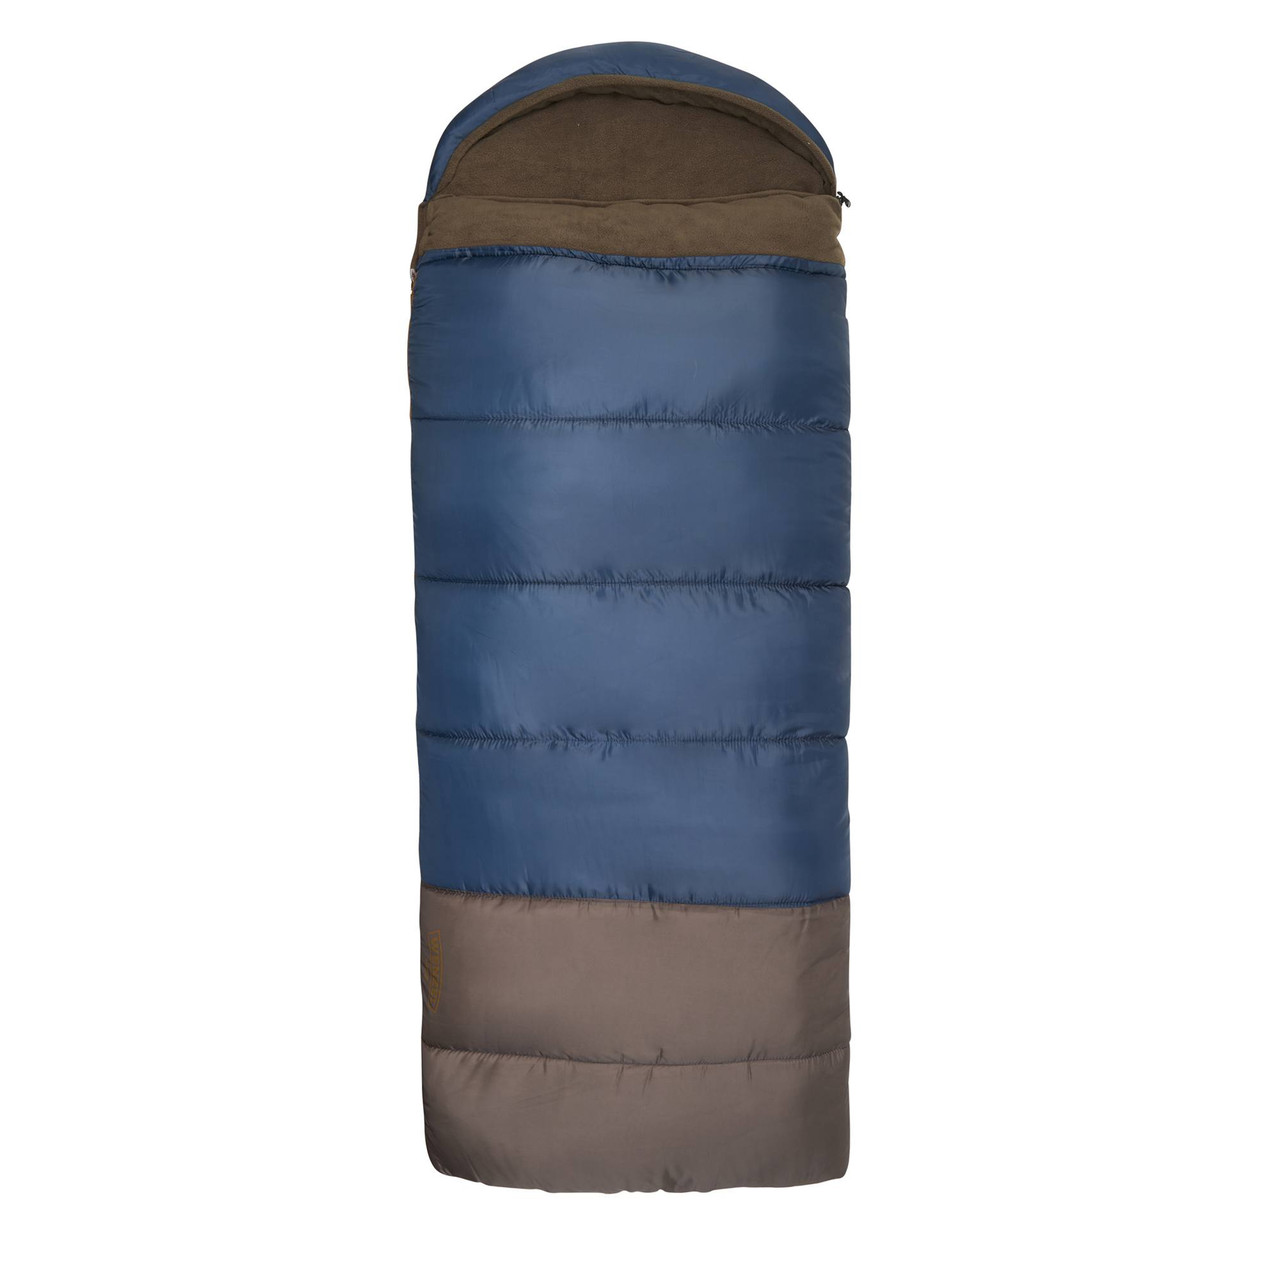 Wenzel Monterey Sleeping Bag, blue, shown fully zipped